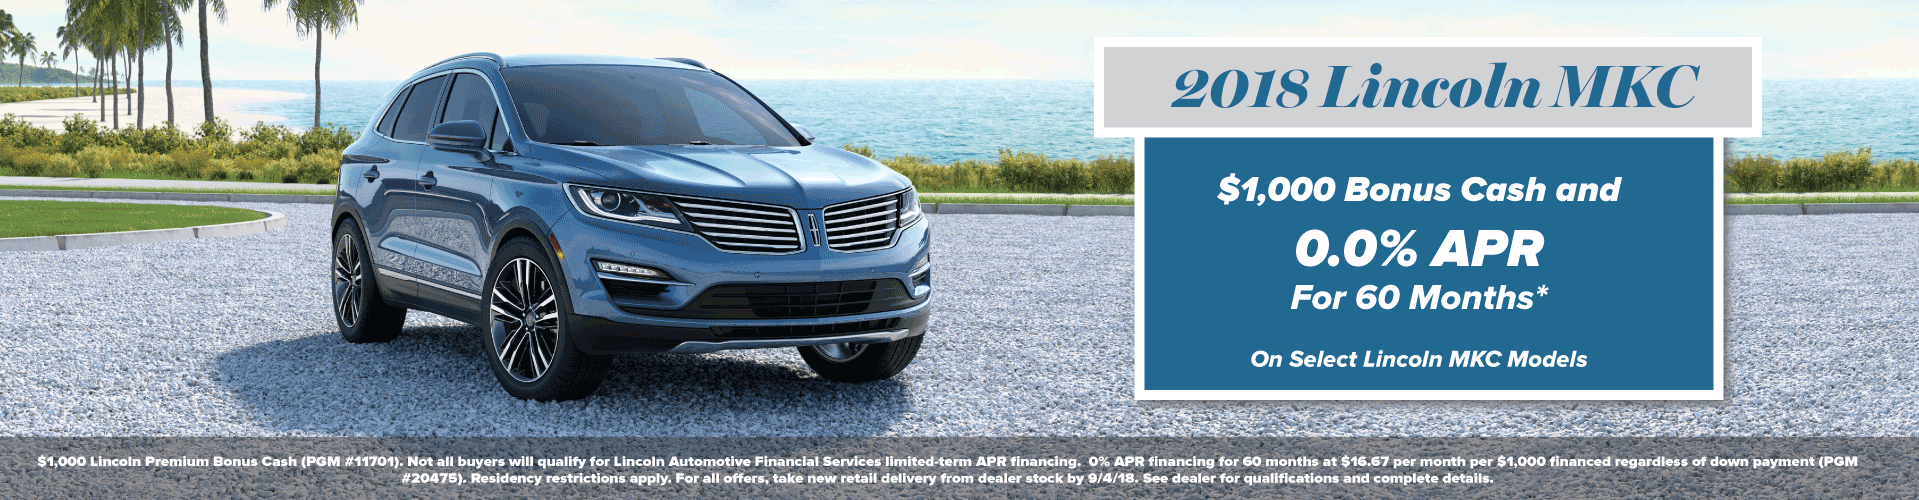 Lincoln MKZ 2018 Summer Invitation